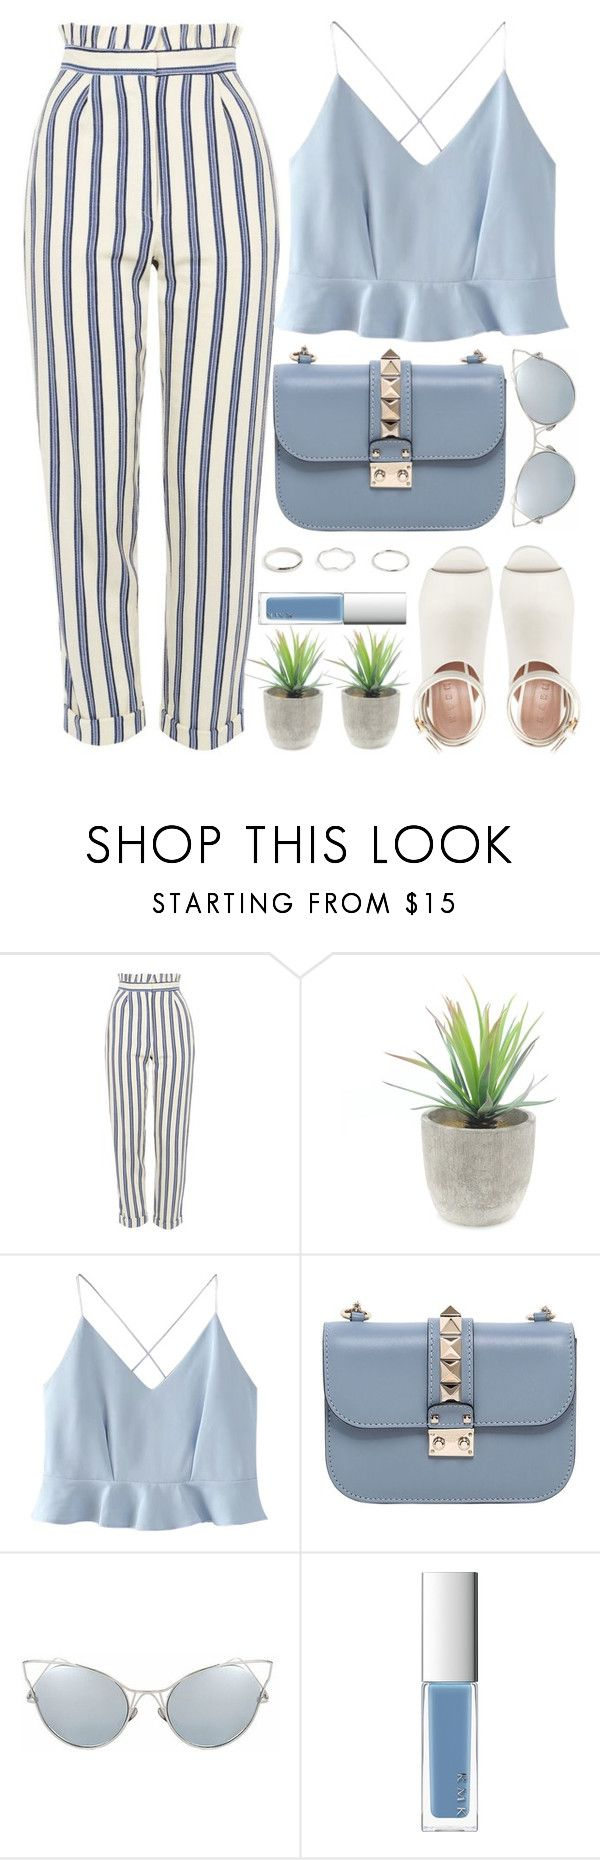 """Braga"" by monmondefou ❤ liked on Polyvore featuring Topshop, WithChic, Valentino, RMK, Marni, white and Blue"